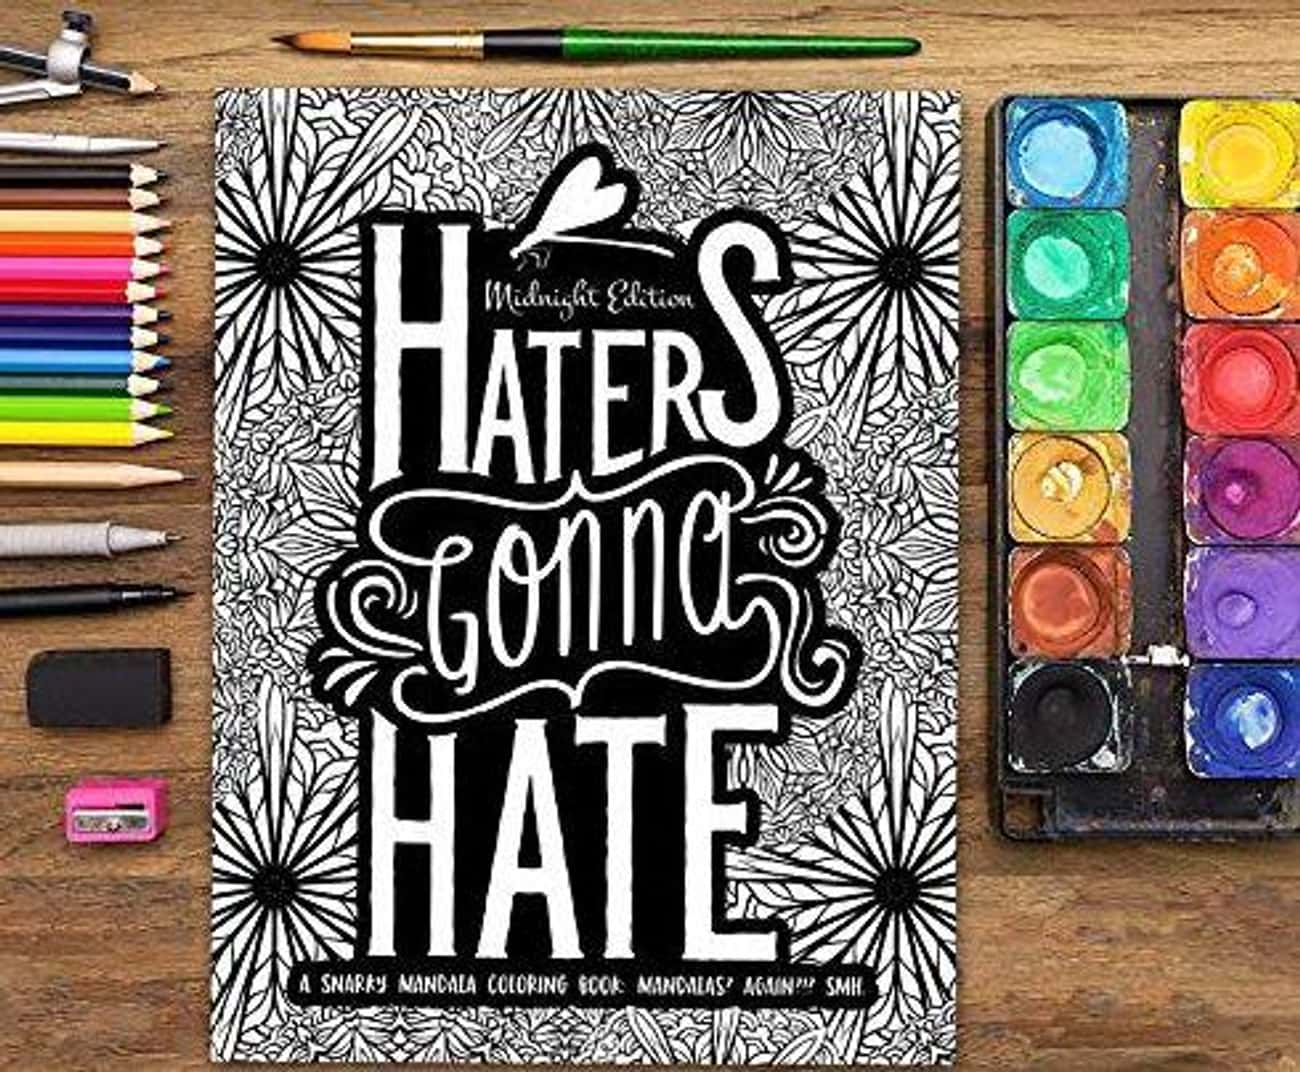 Haters Gonna Hate: A Snarky Ma is listed (or ranked) 4 on the list The Best White Elephant Gifts